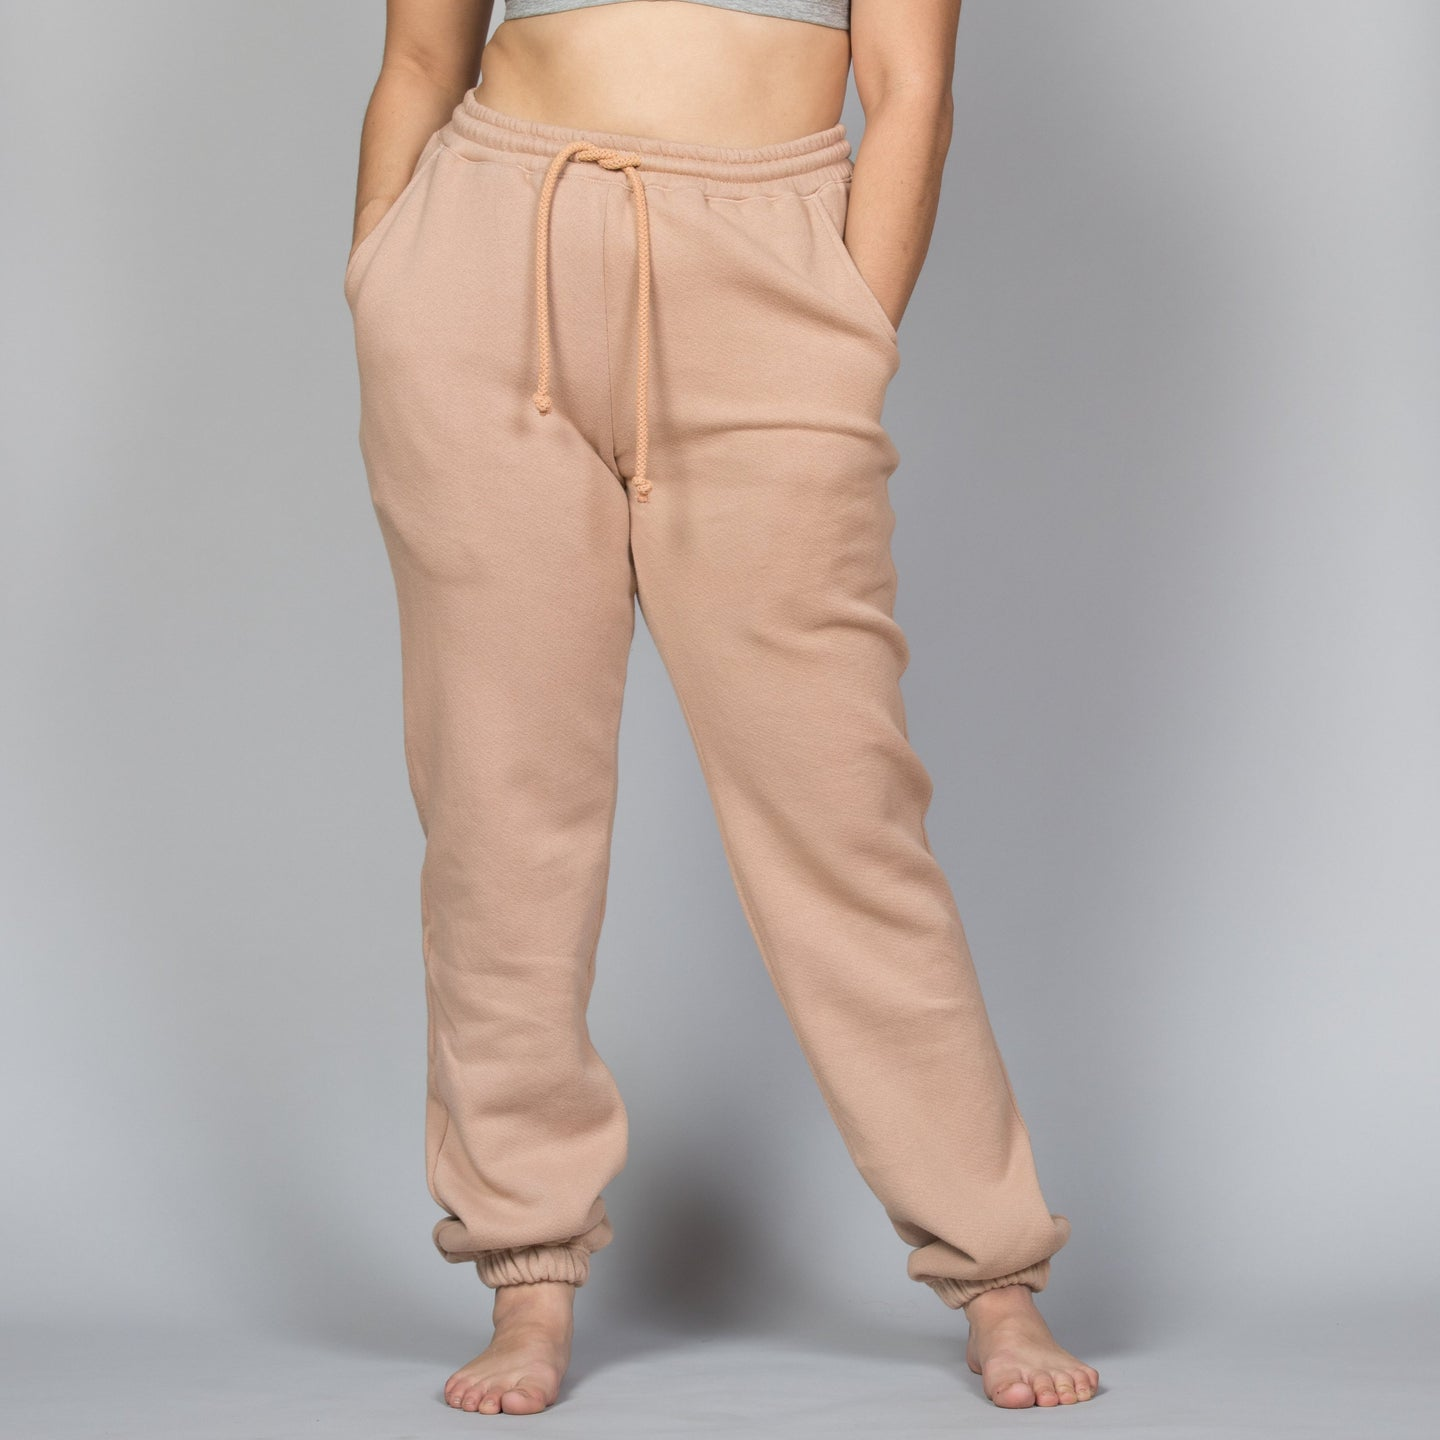 person with hand in pockets of light pink sweatpants